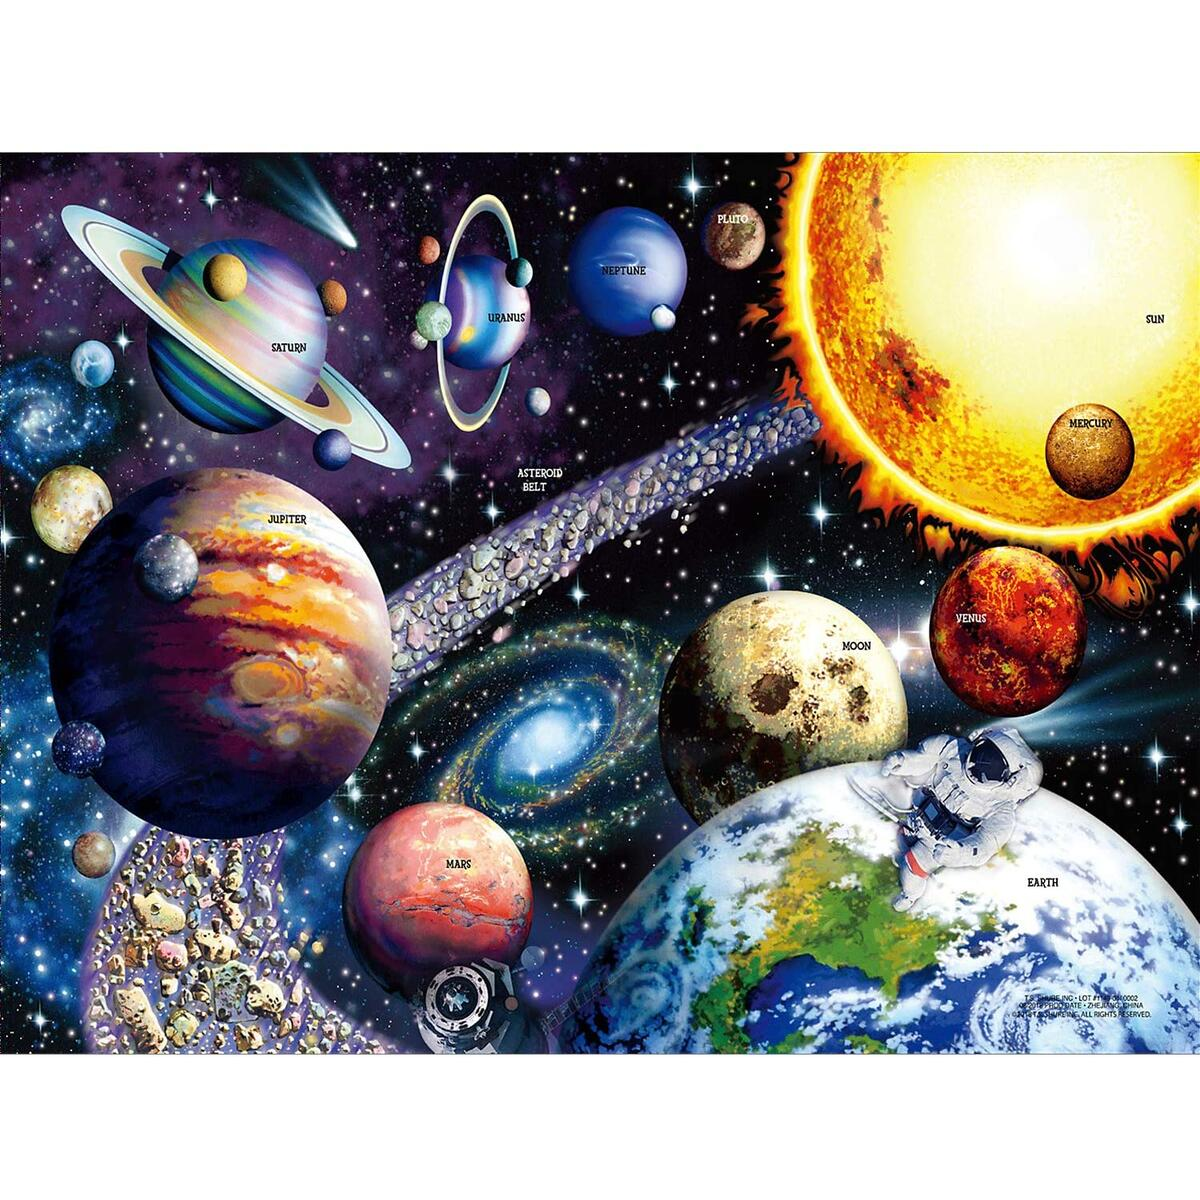 Sofore Planetary Vision Jigsaw Puzzle for Adults Teen Kids 1000 Piece Jigsaw Puzzle Fit Together Perfectly, Educational Intellectual Family Game